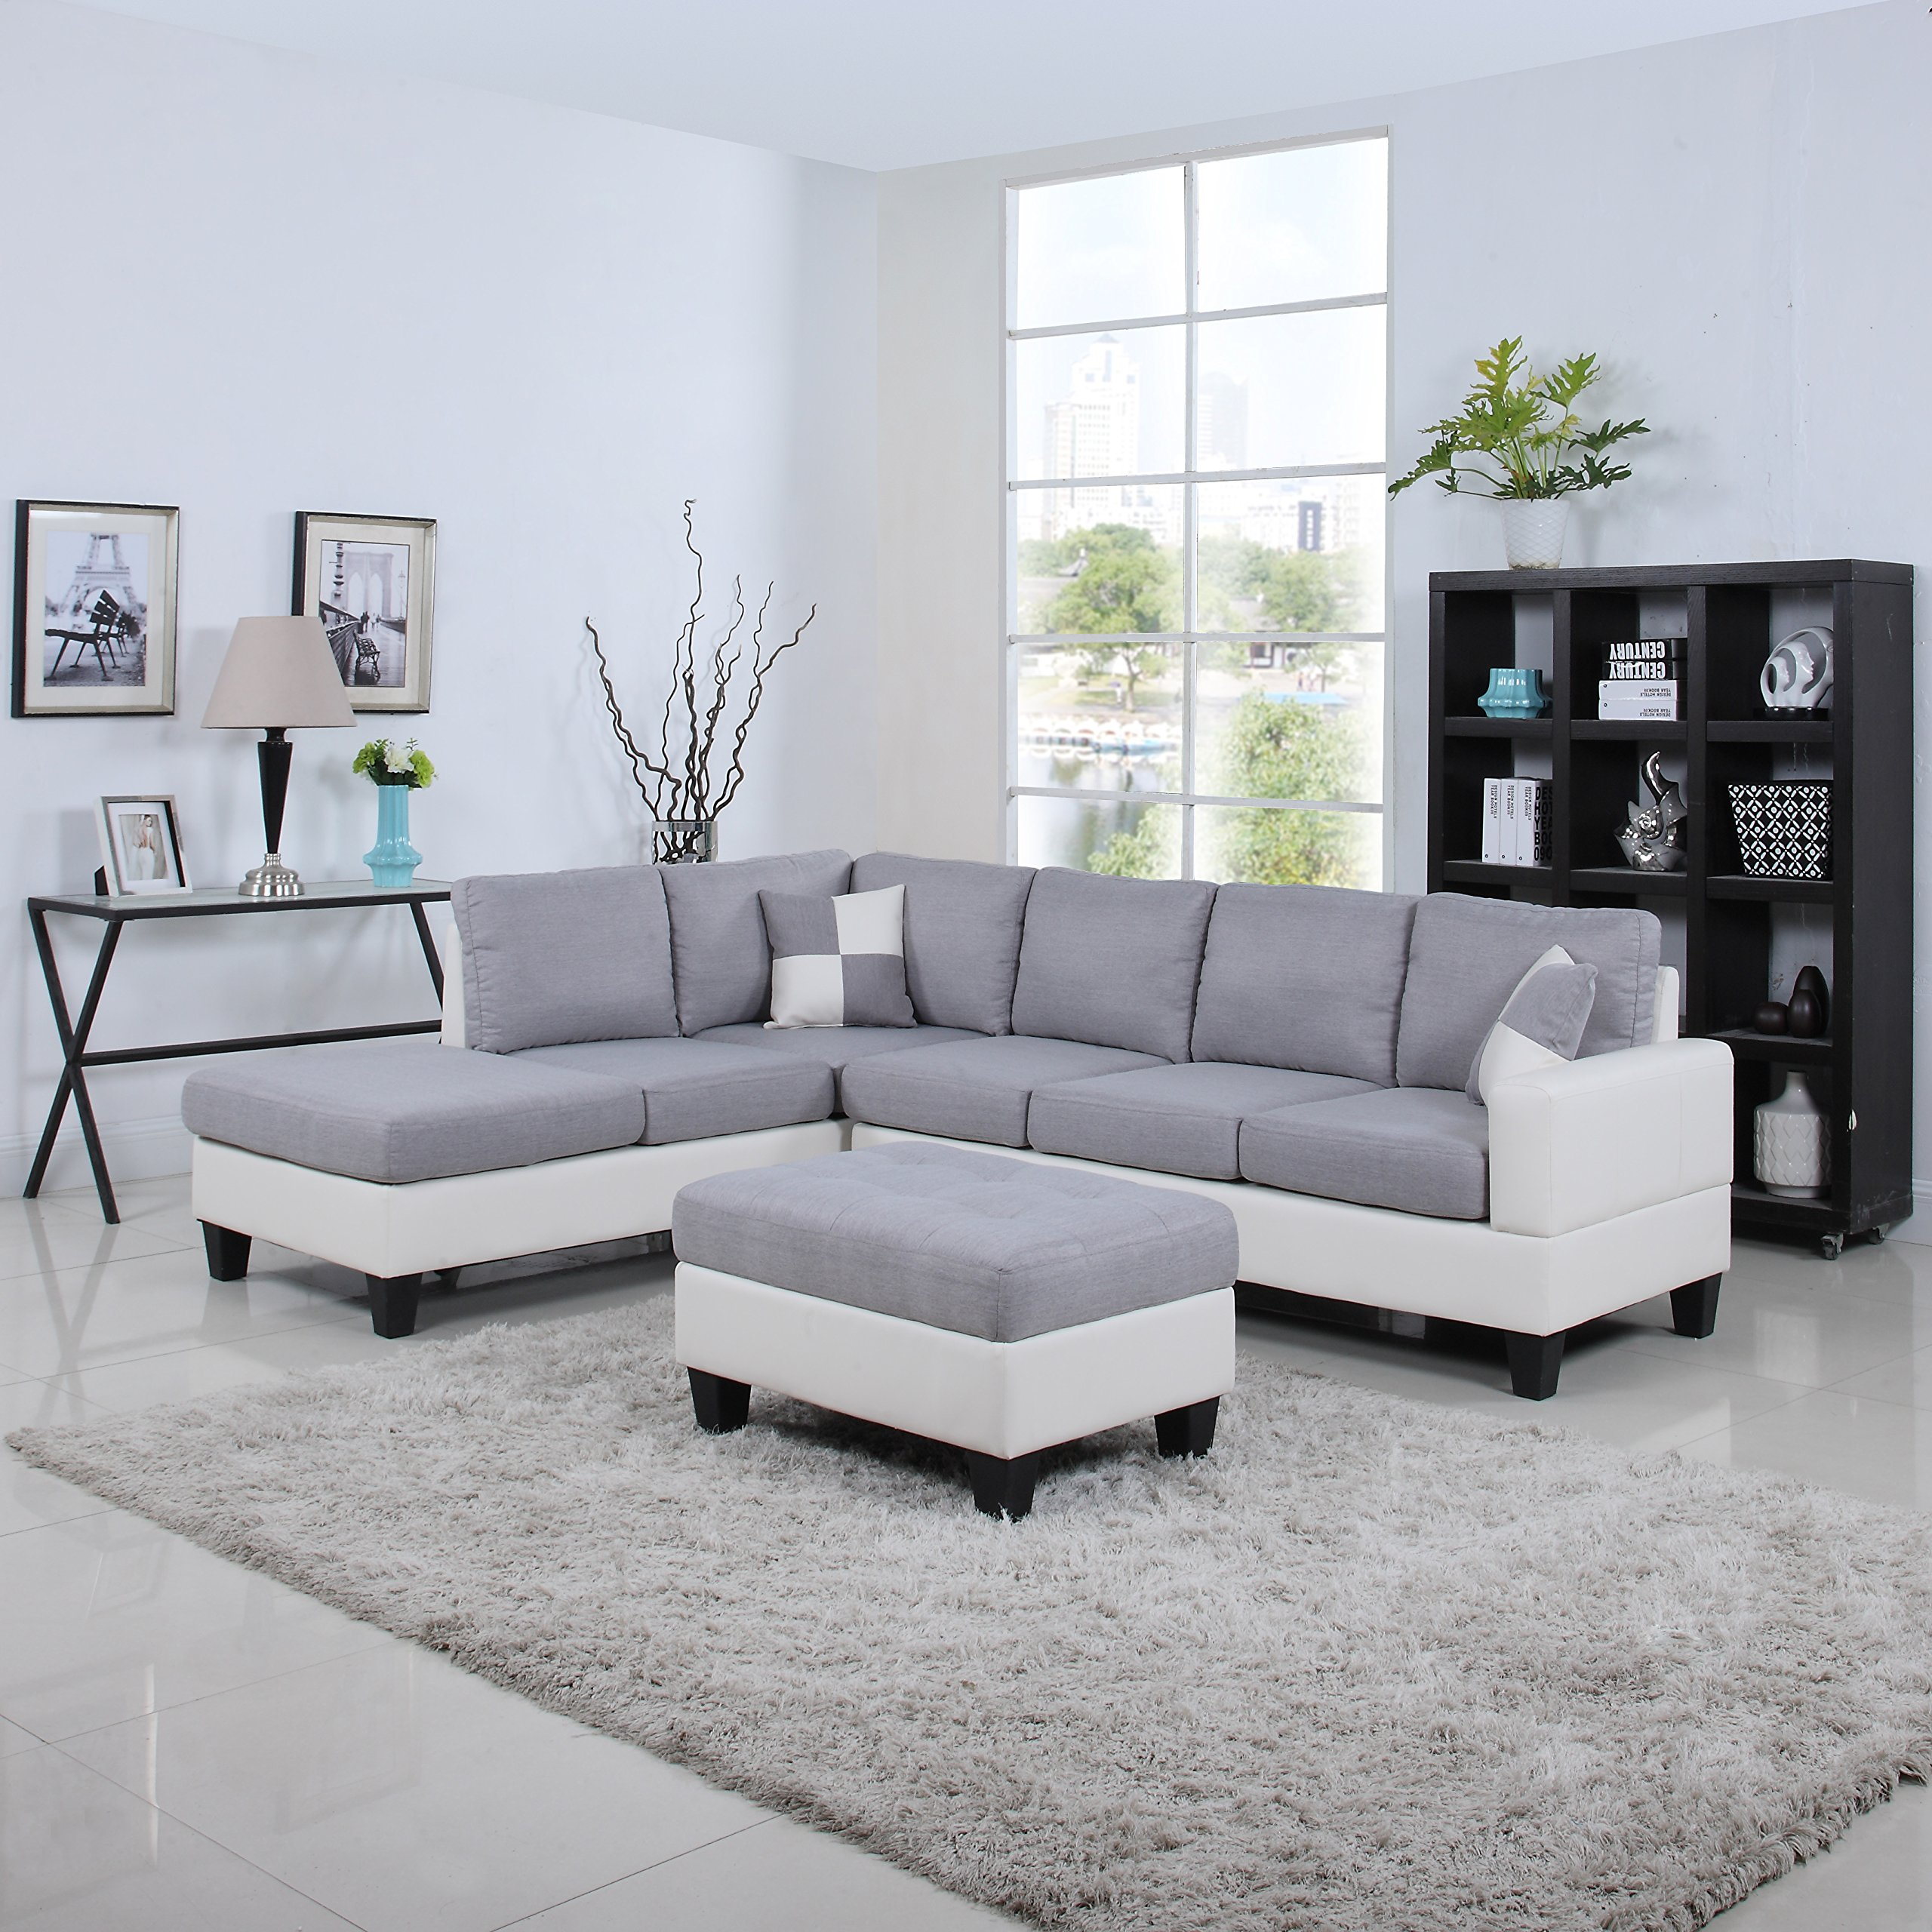 DIVANO ROMA FURNITURE Classic Two Tone Large Linen Fabric and Bonded Leather Living Room Sectional Sofa (White/Light Grey) by DIVANO ROMA FURNITURE